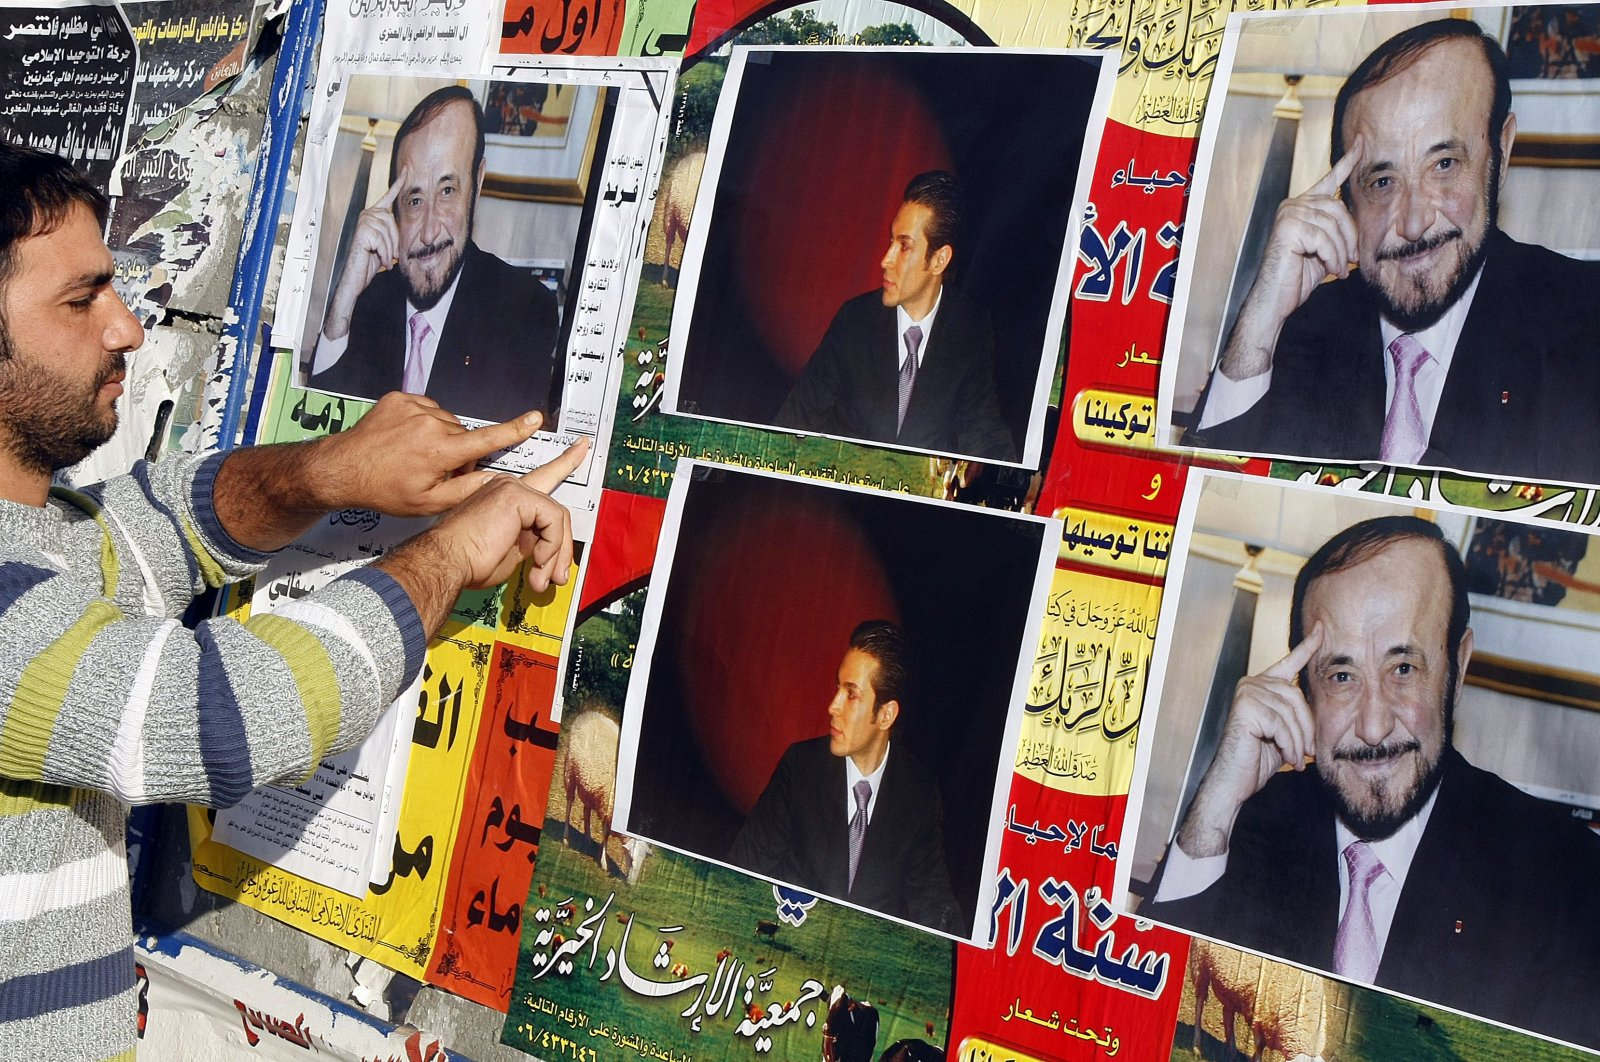 A man pastes pictures of Rifaat Assad (R), the younger brother of late Syrian President Hafez Assad and uncle of Bashar Assad, and Rifaat Assad's son Ribal on a wall in the northern city of Tripoli, Lebanon, Dec. 6, 2007. (AFP Photo)